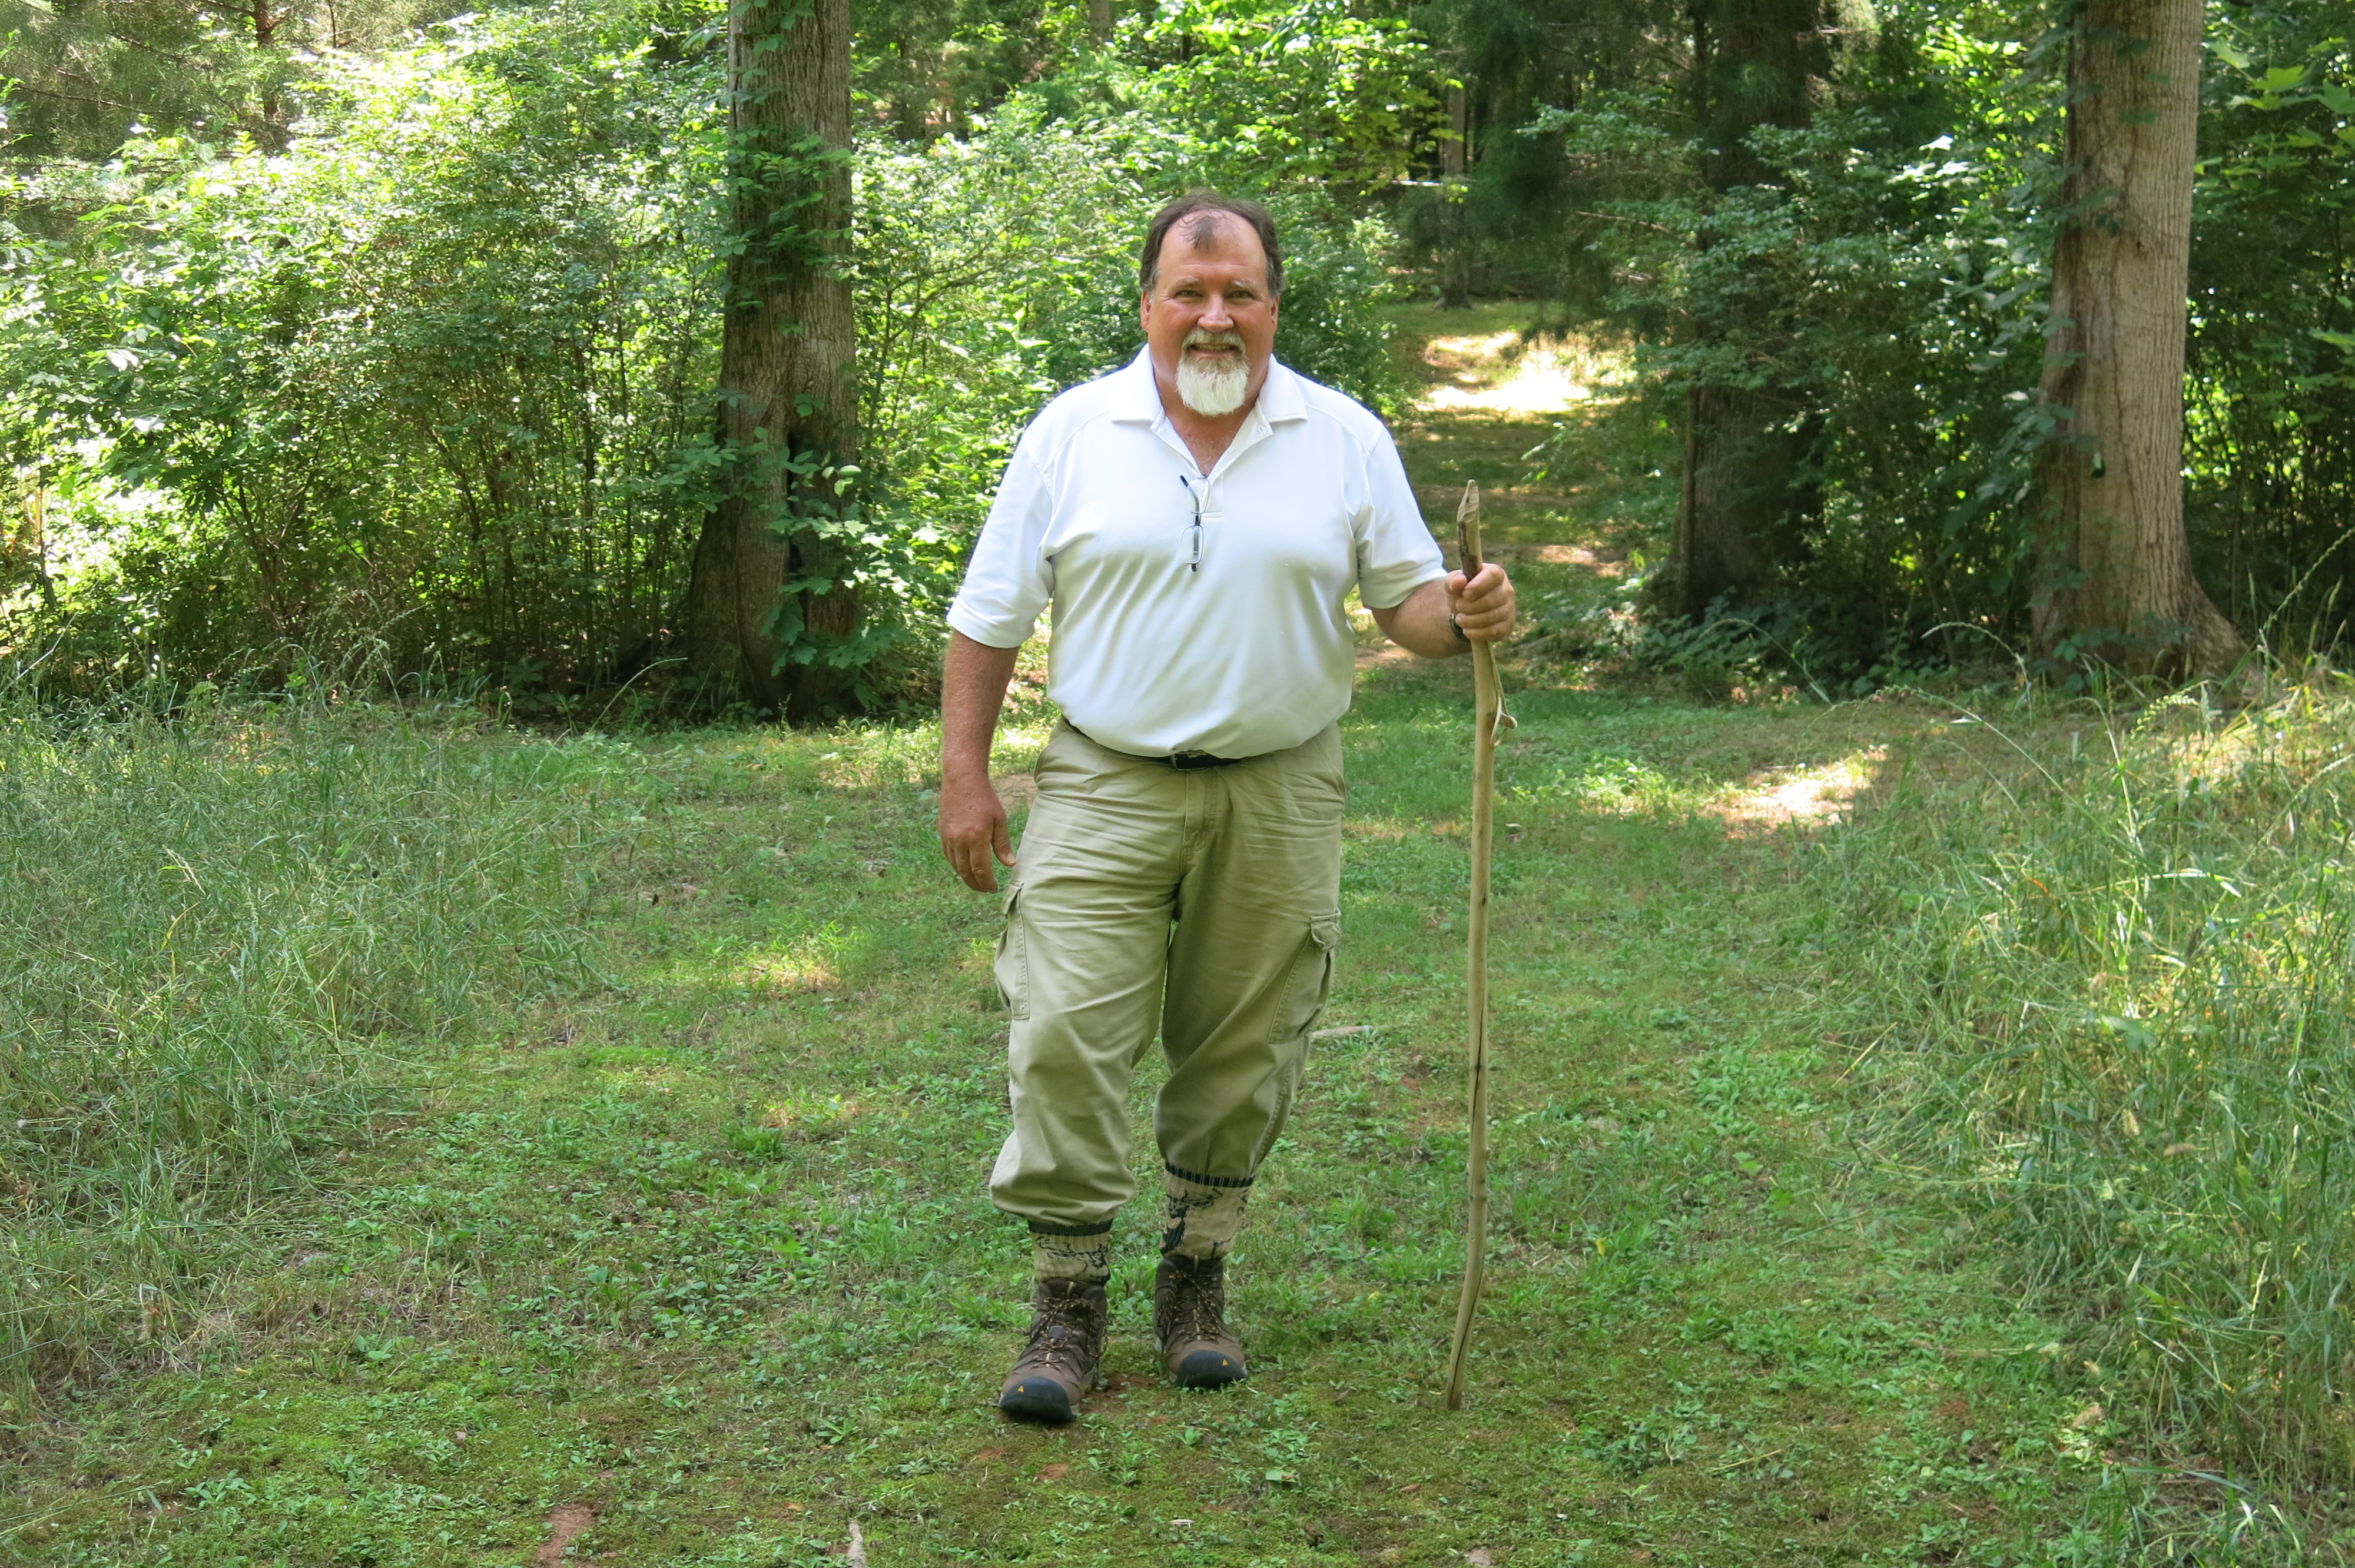 The best way to protect against ticks this summer is to stay on mowed or paved pathways. If you're going to be in brushy areas or tall grass, wear long pants that are tucked into boots or socks and tuck in shirts. Here, Elmer Gray, a public health entomologist with the University of Georgia Cooperative Extension, is wearing the clothing he uses when in a tick habitat.